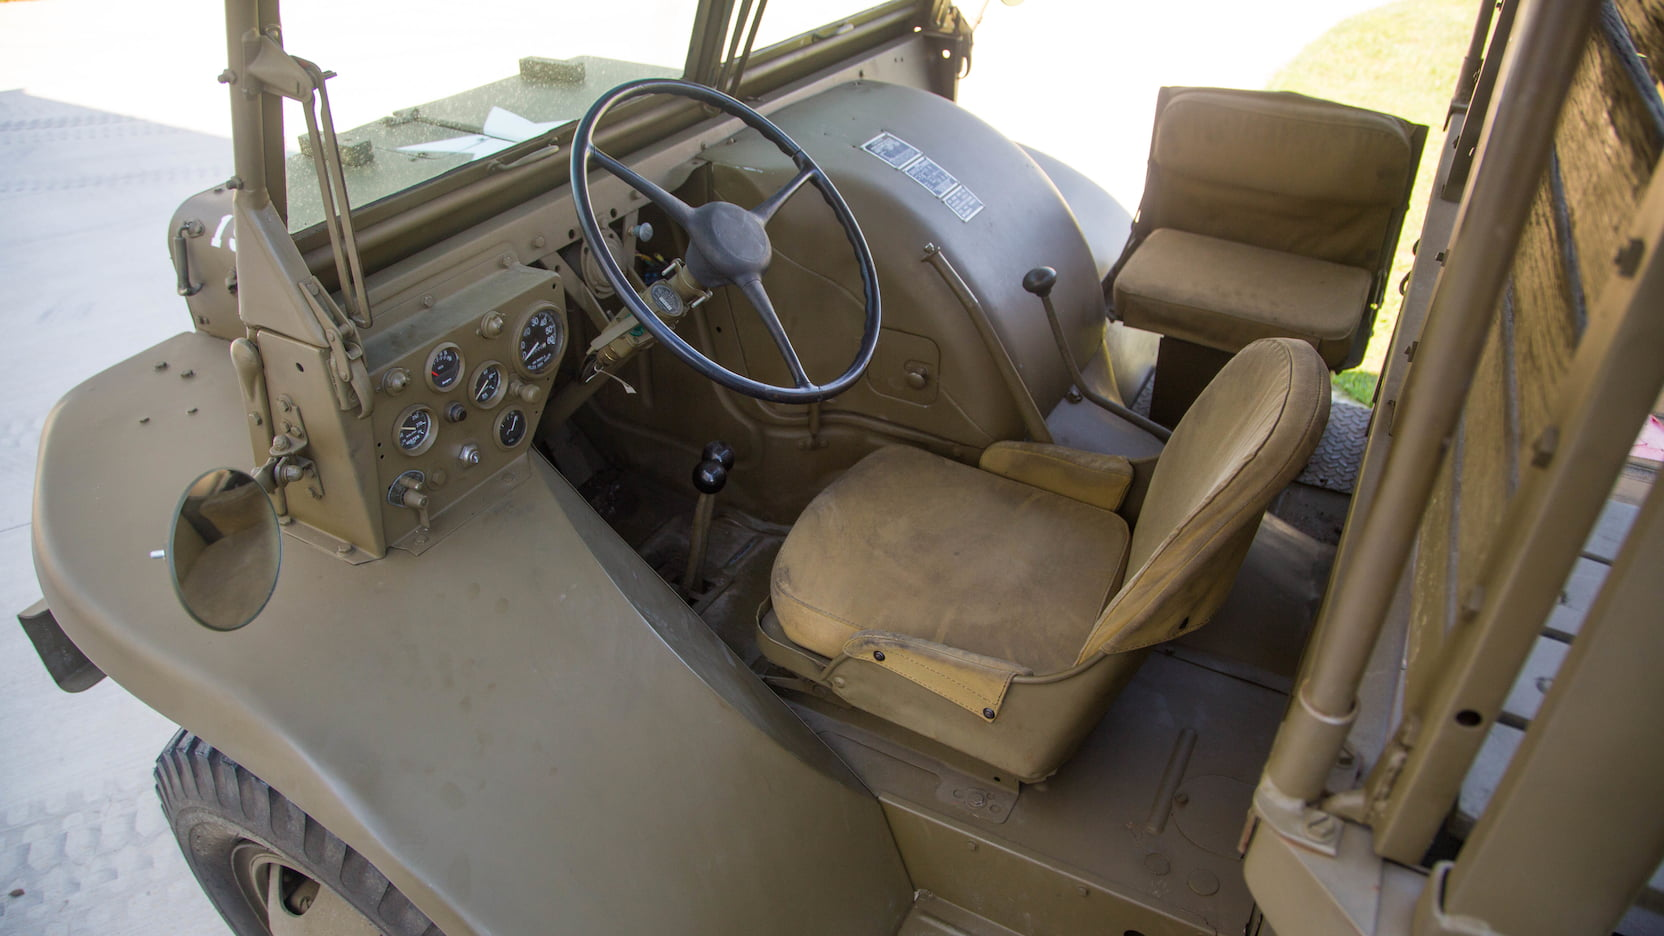 Ford Burma Jeep driver's position